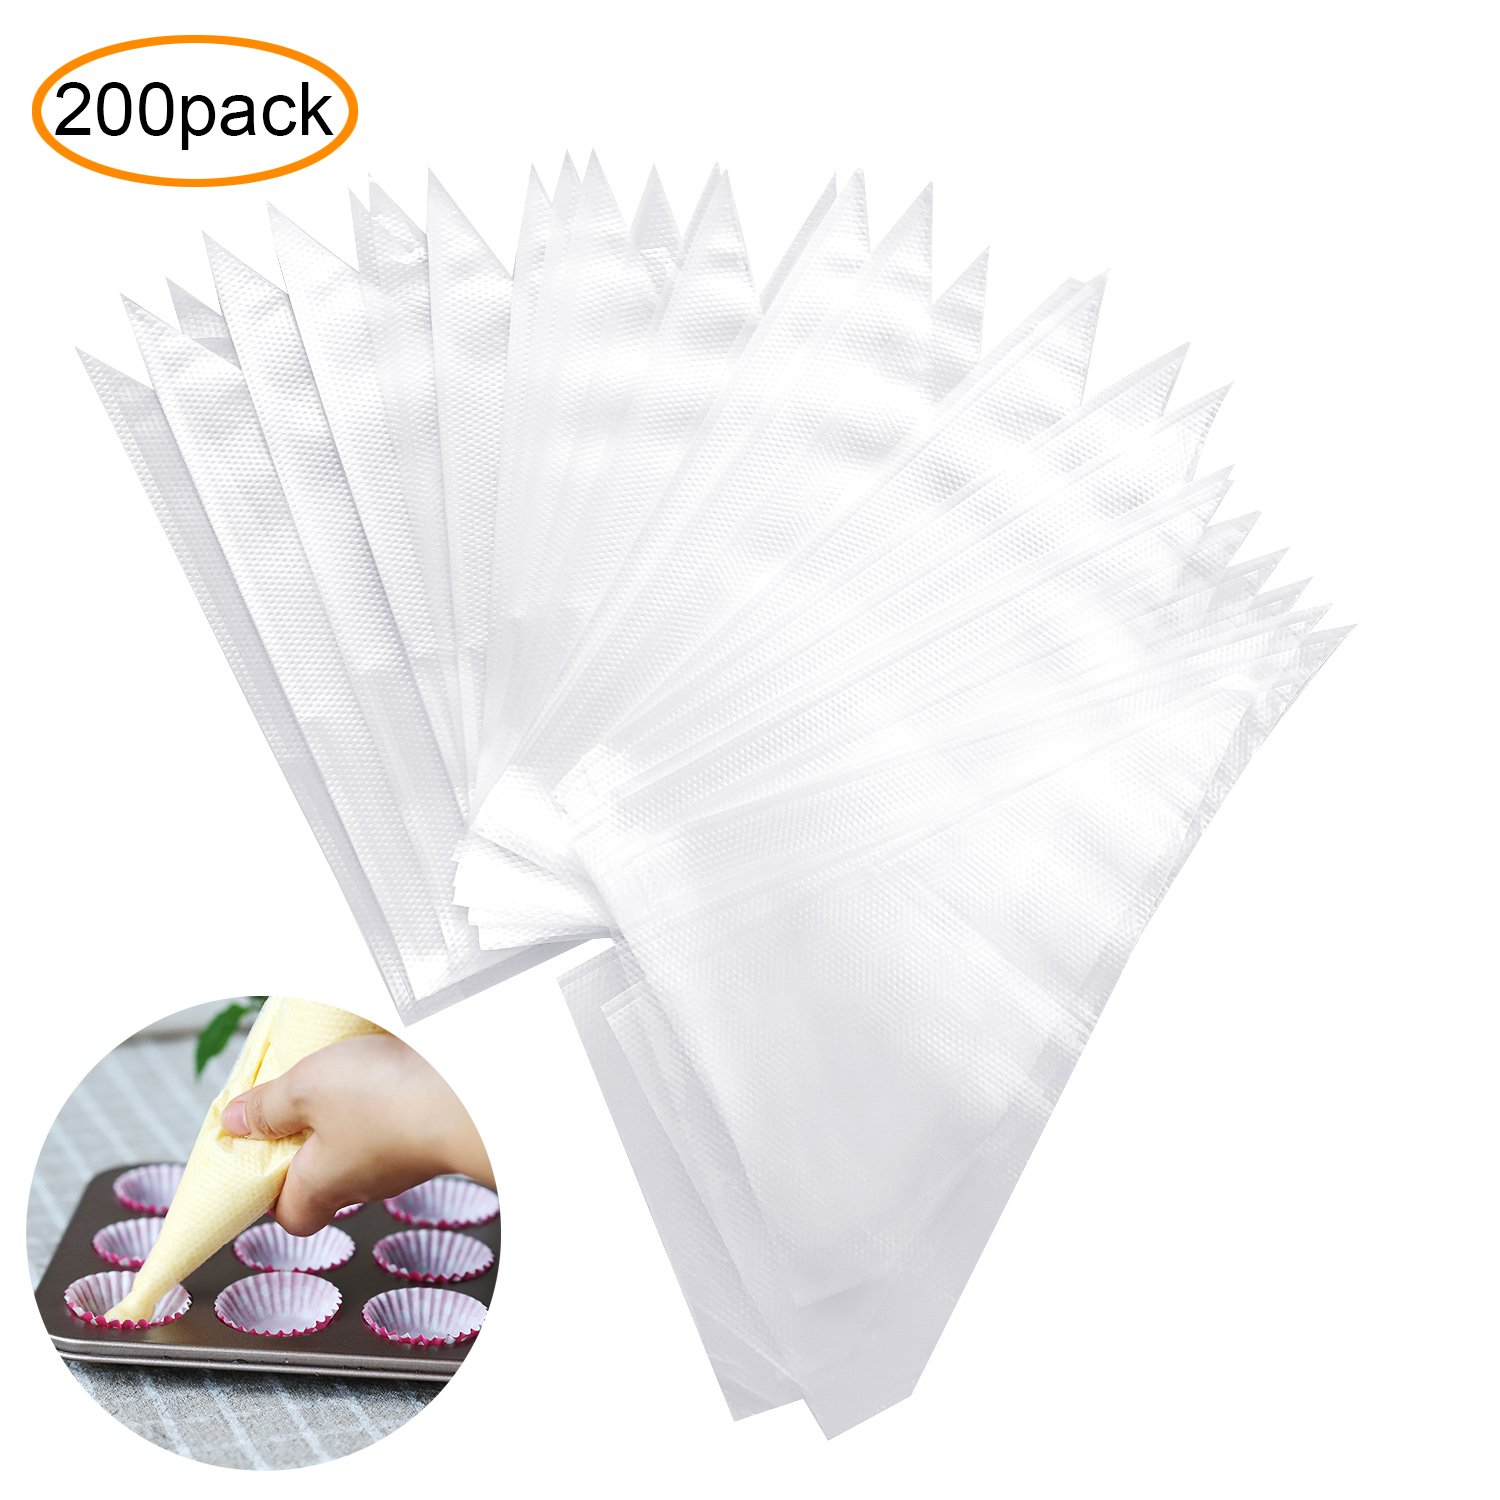 200 Pcs Thickened Disposable Pastry Bag Pastry Decorating Bags Icing Piping Bag YHmall